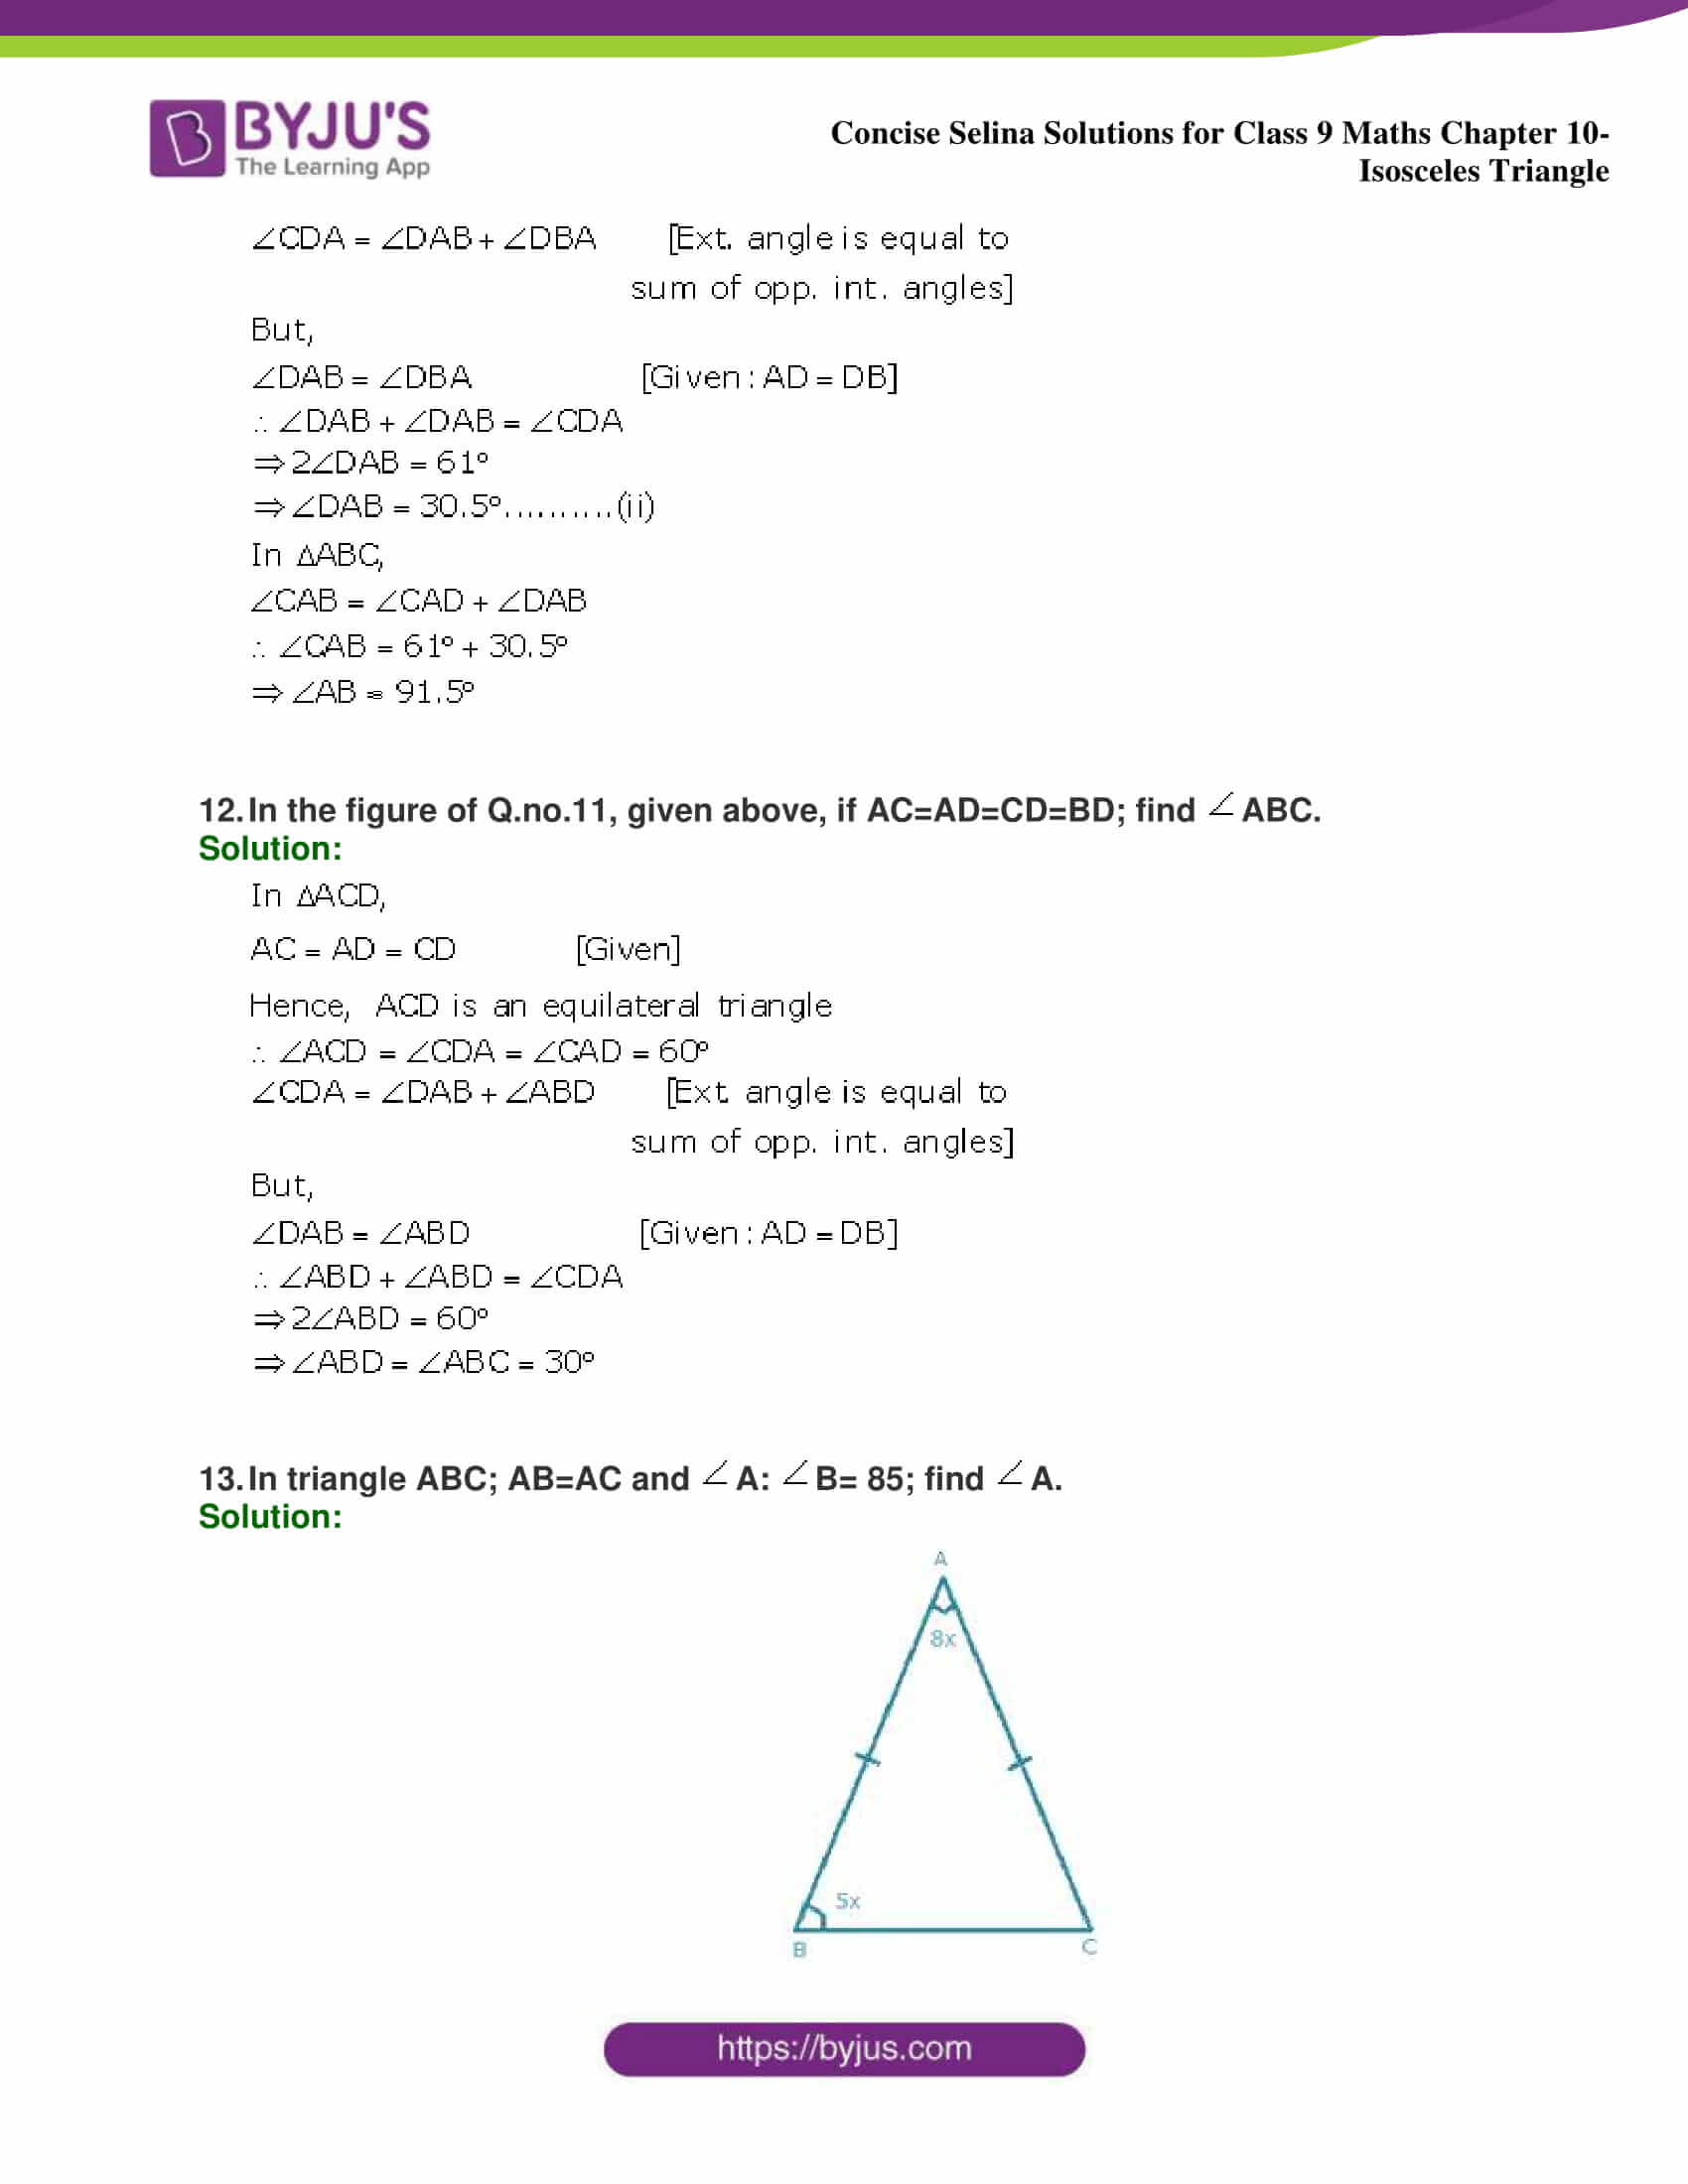 selina Solutions for Class 9 Maths Chapter 10 part 13